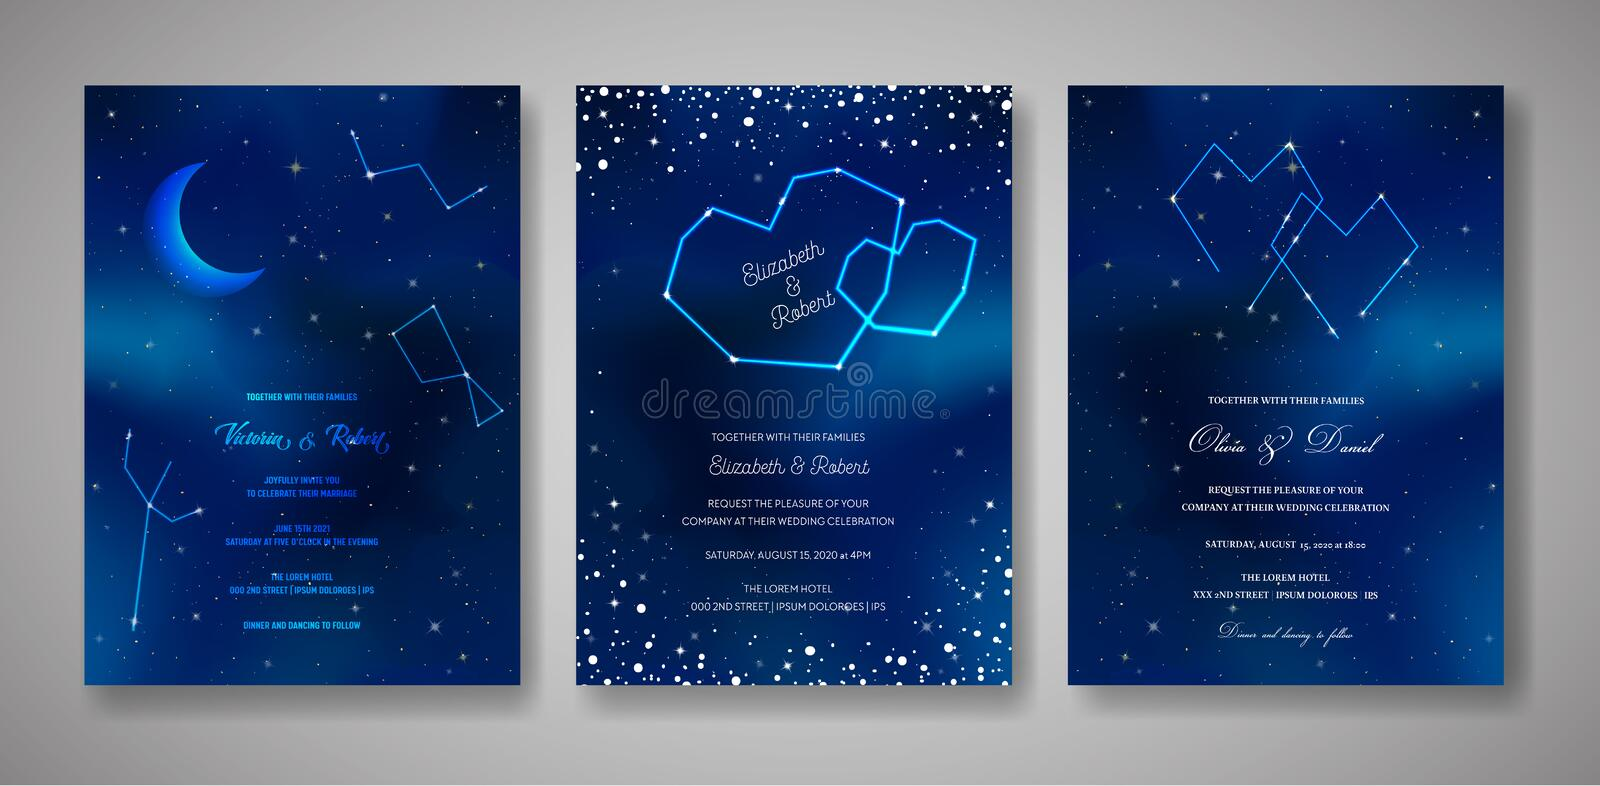 Set of Starry Night Wedding Invitation Cards, Save the Date Celestial Template of Galaxy, Space, Stars, trendy Sky. Illustration in vector vector illustration